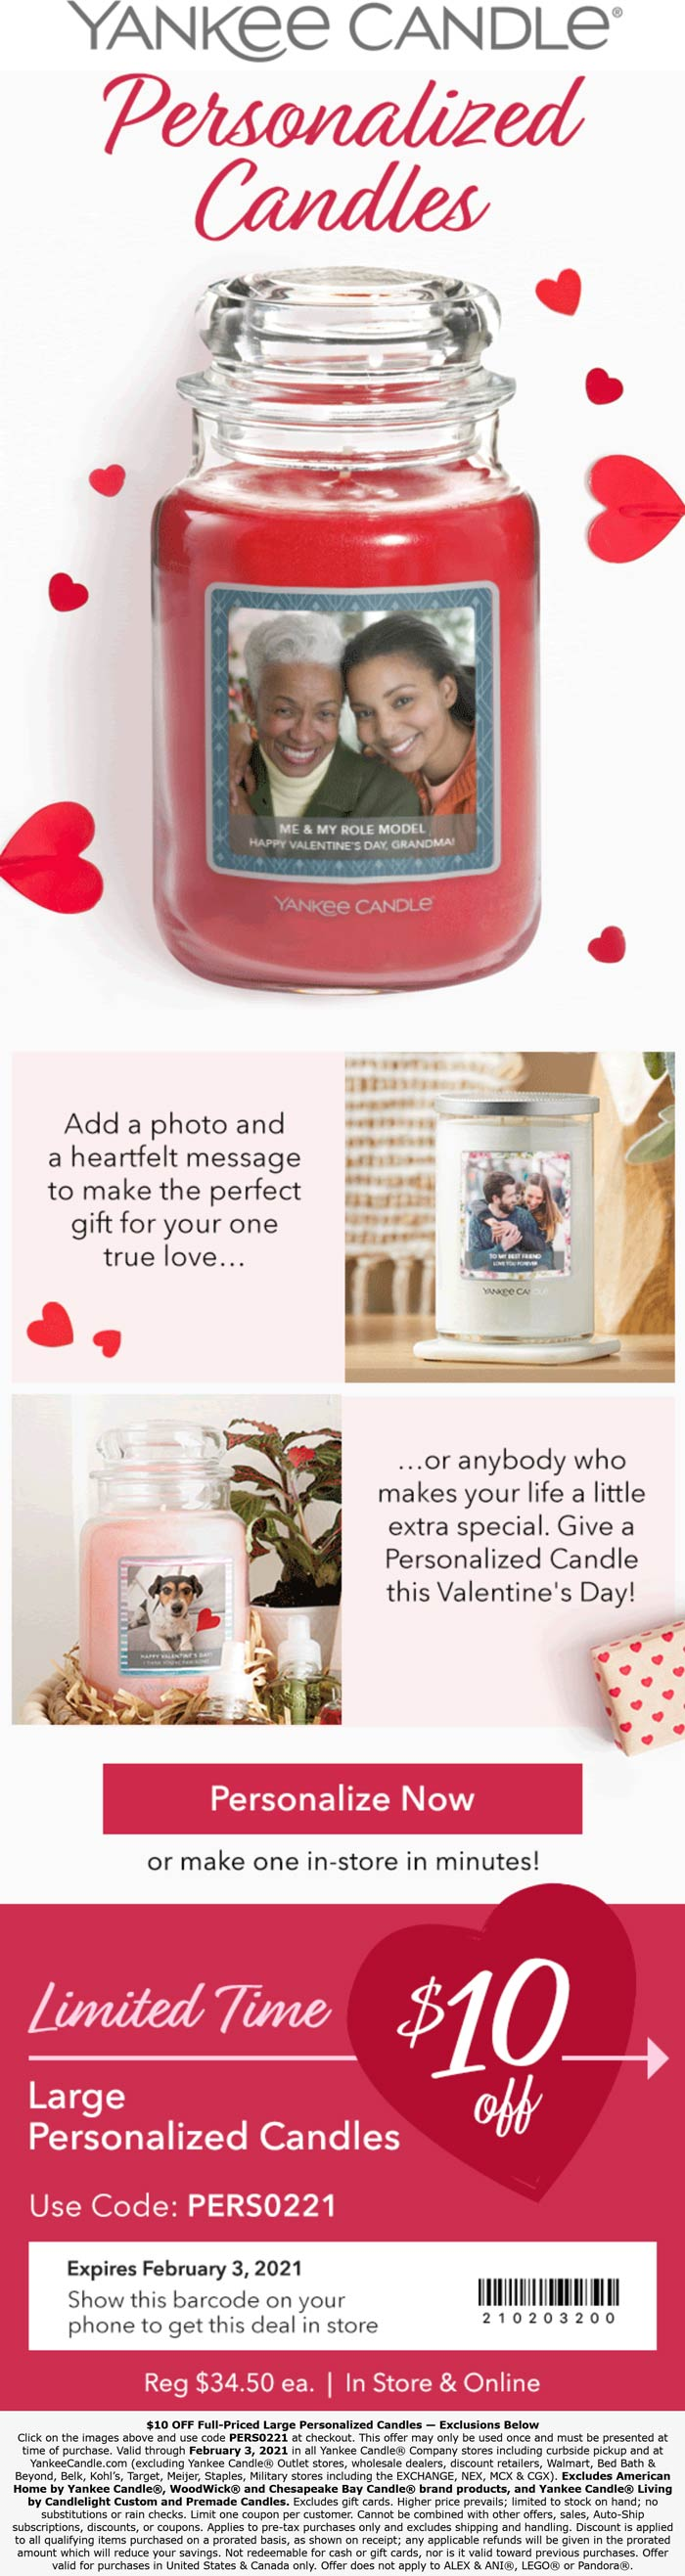 Yankee Candle stores Coupon  $10 off personalized candle today at Yankee Candle, or online via promo code PERS0221 #yankeecandle